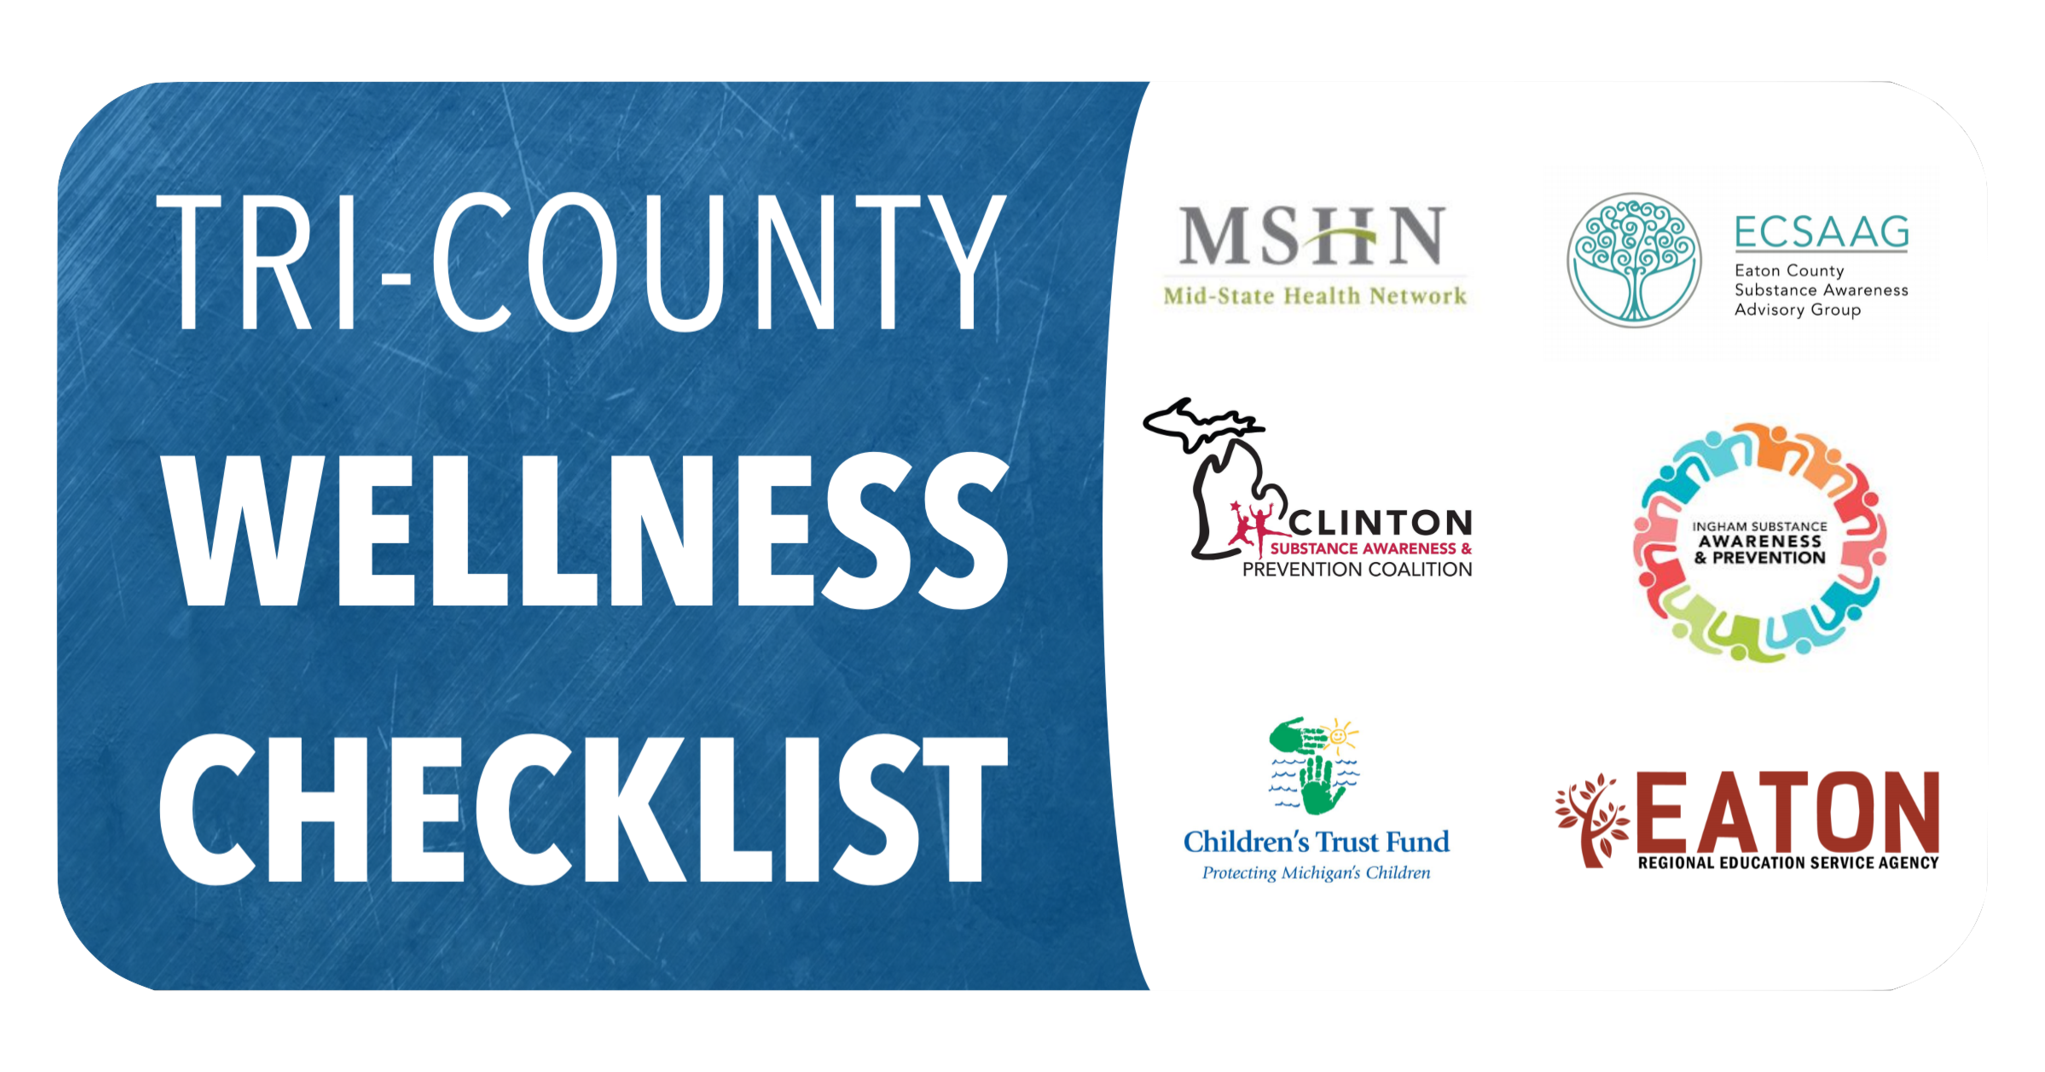 Tri-County Wellness Checklist